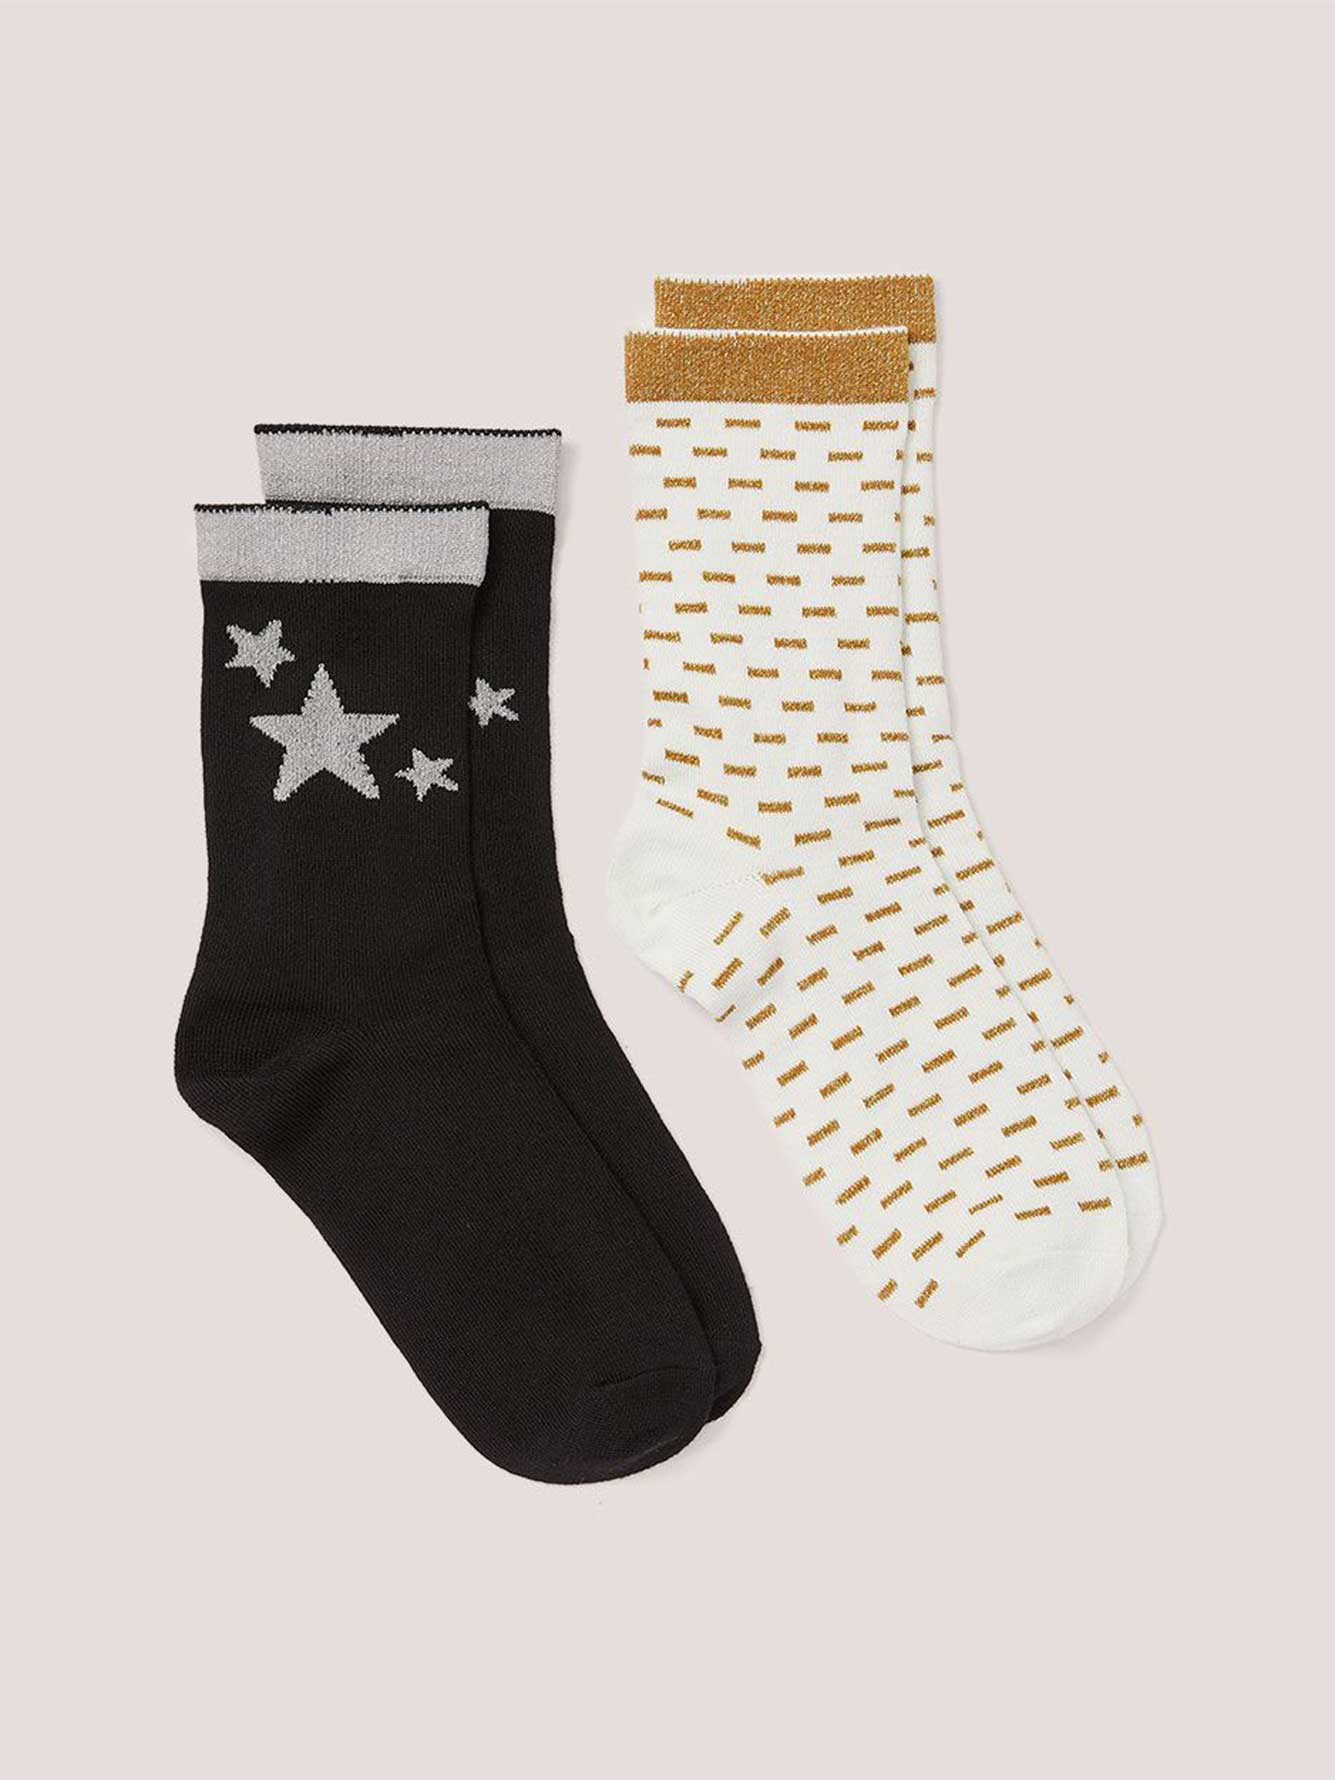 608b475698d9 2 Pairs of Lurex Socks with Star Motif | Penningtons